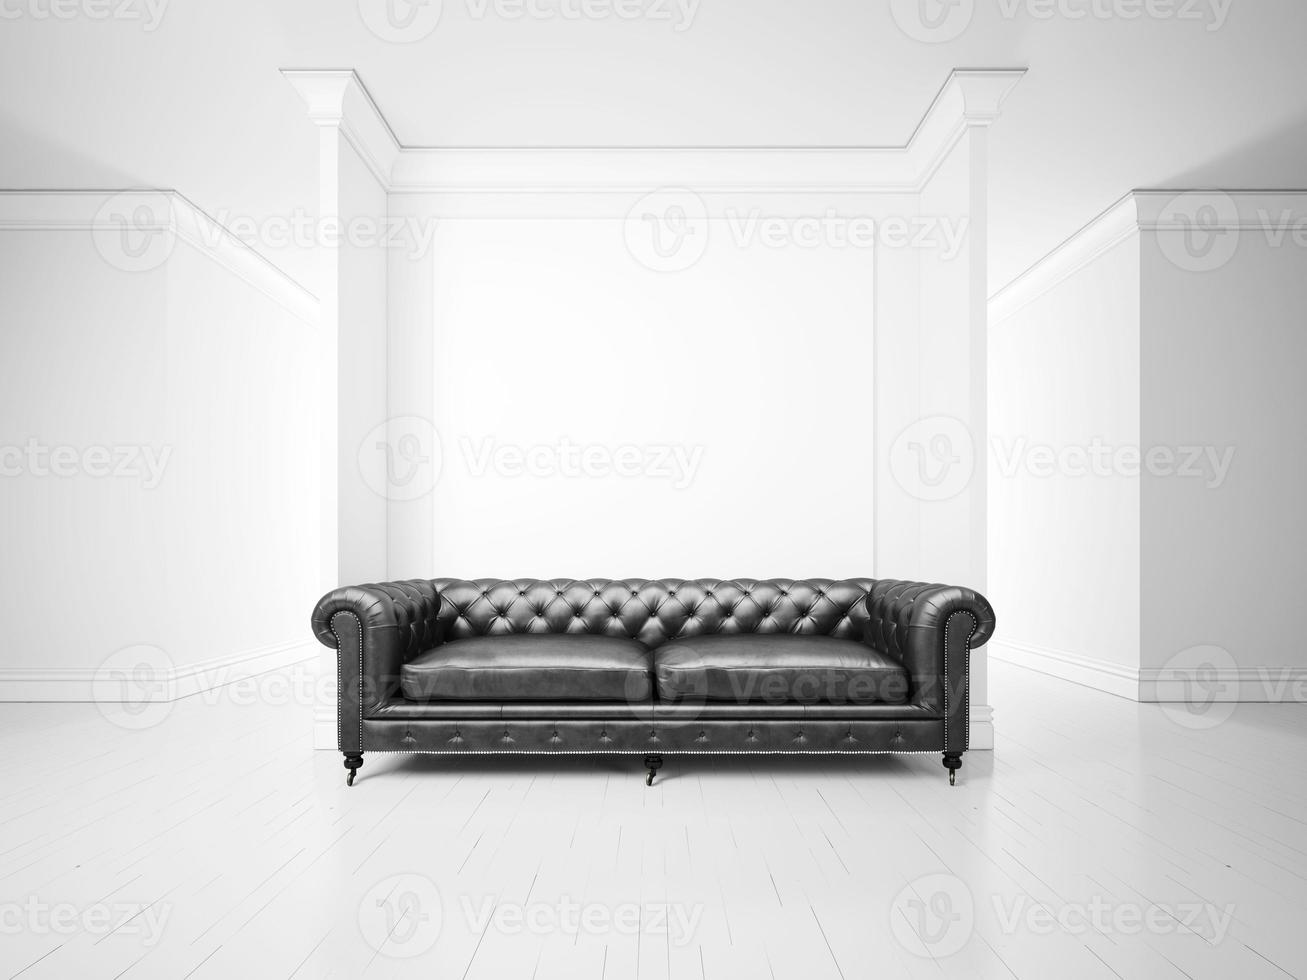 White interior with sofa and banner photo